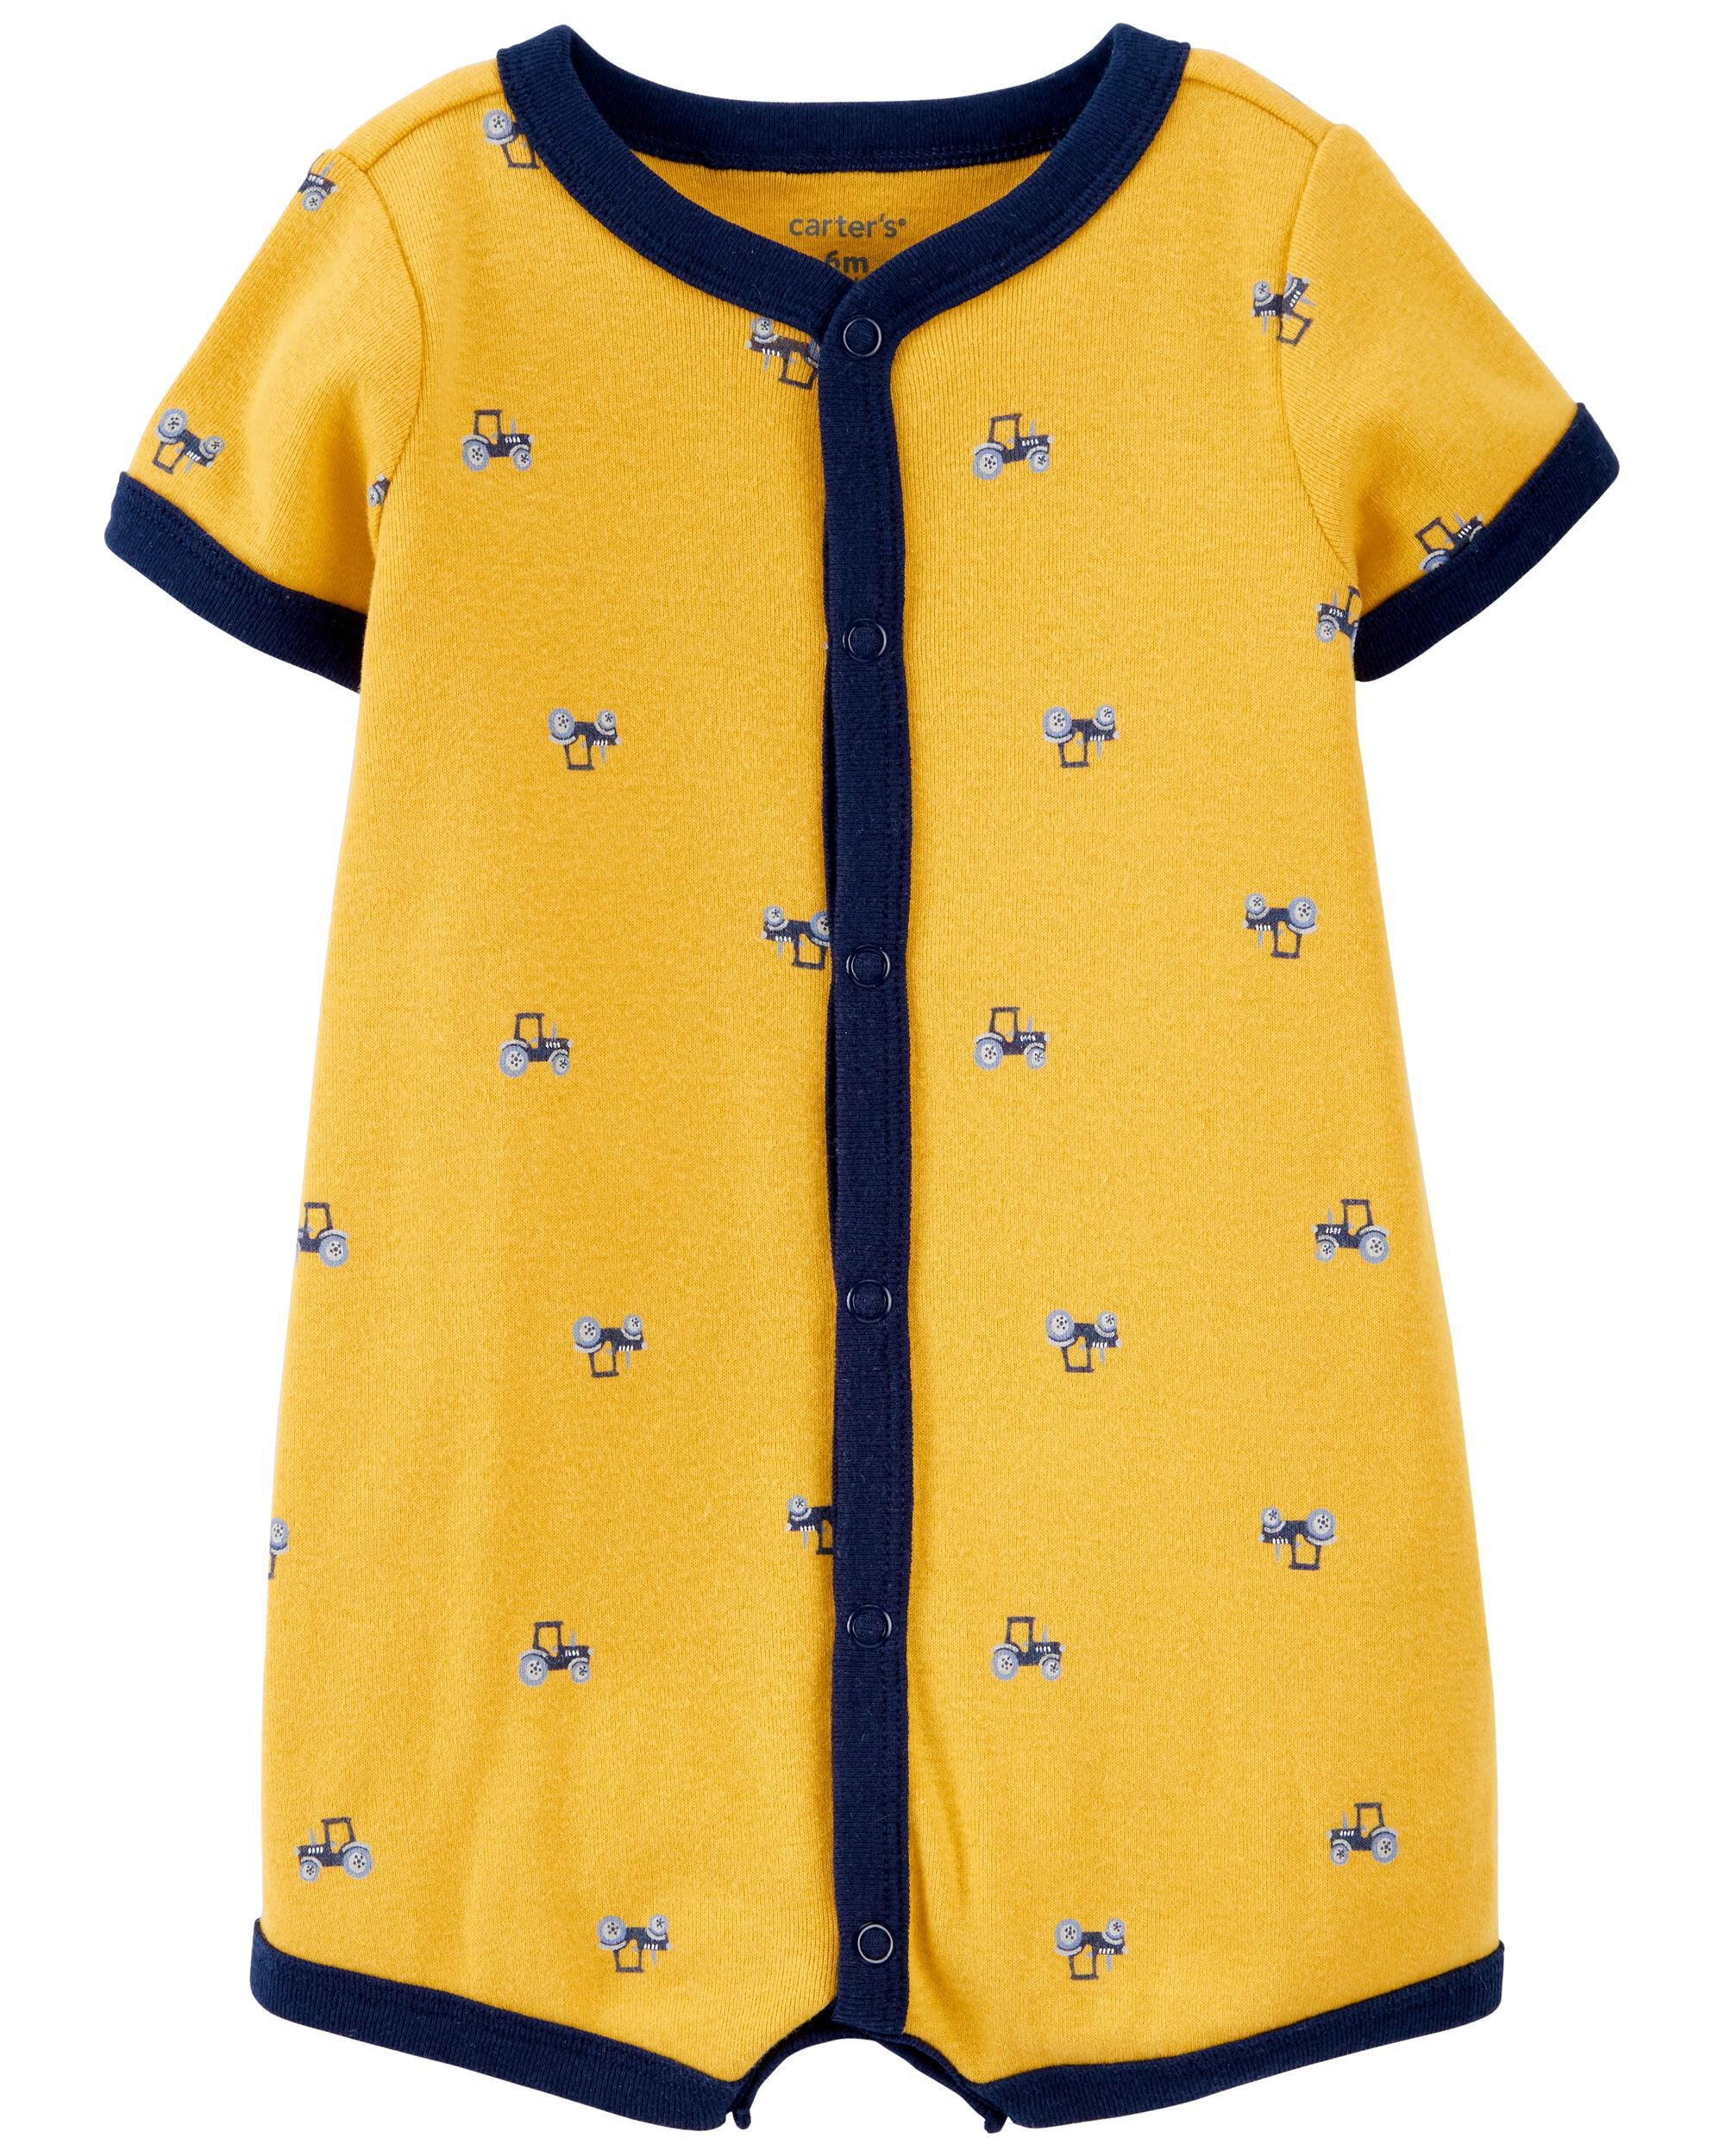 Carters Tractor Snap-Front Romper